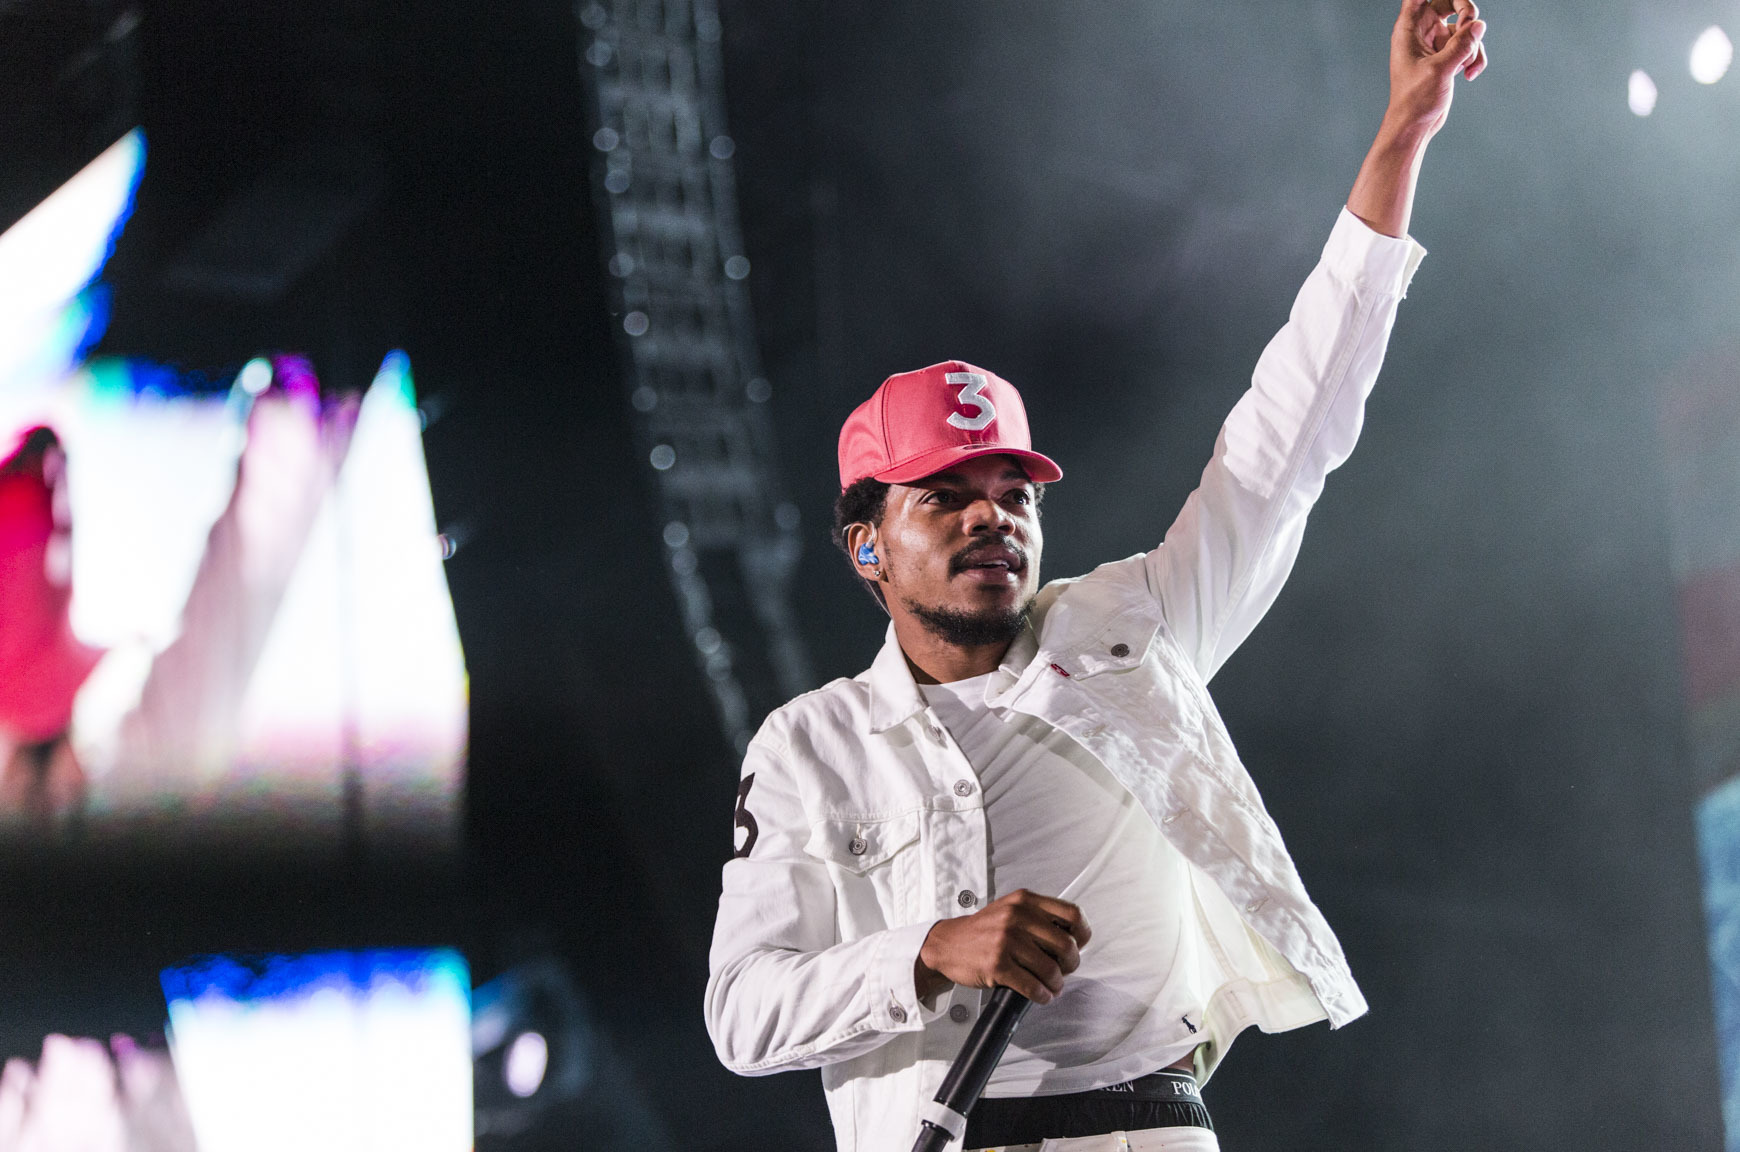 Photos from Chance the Rapper's Magnificent Coloring Day